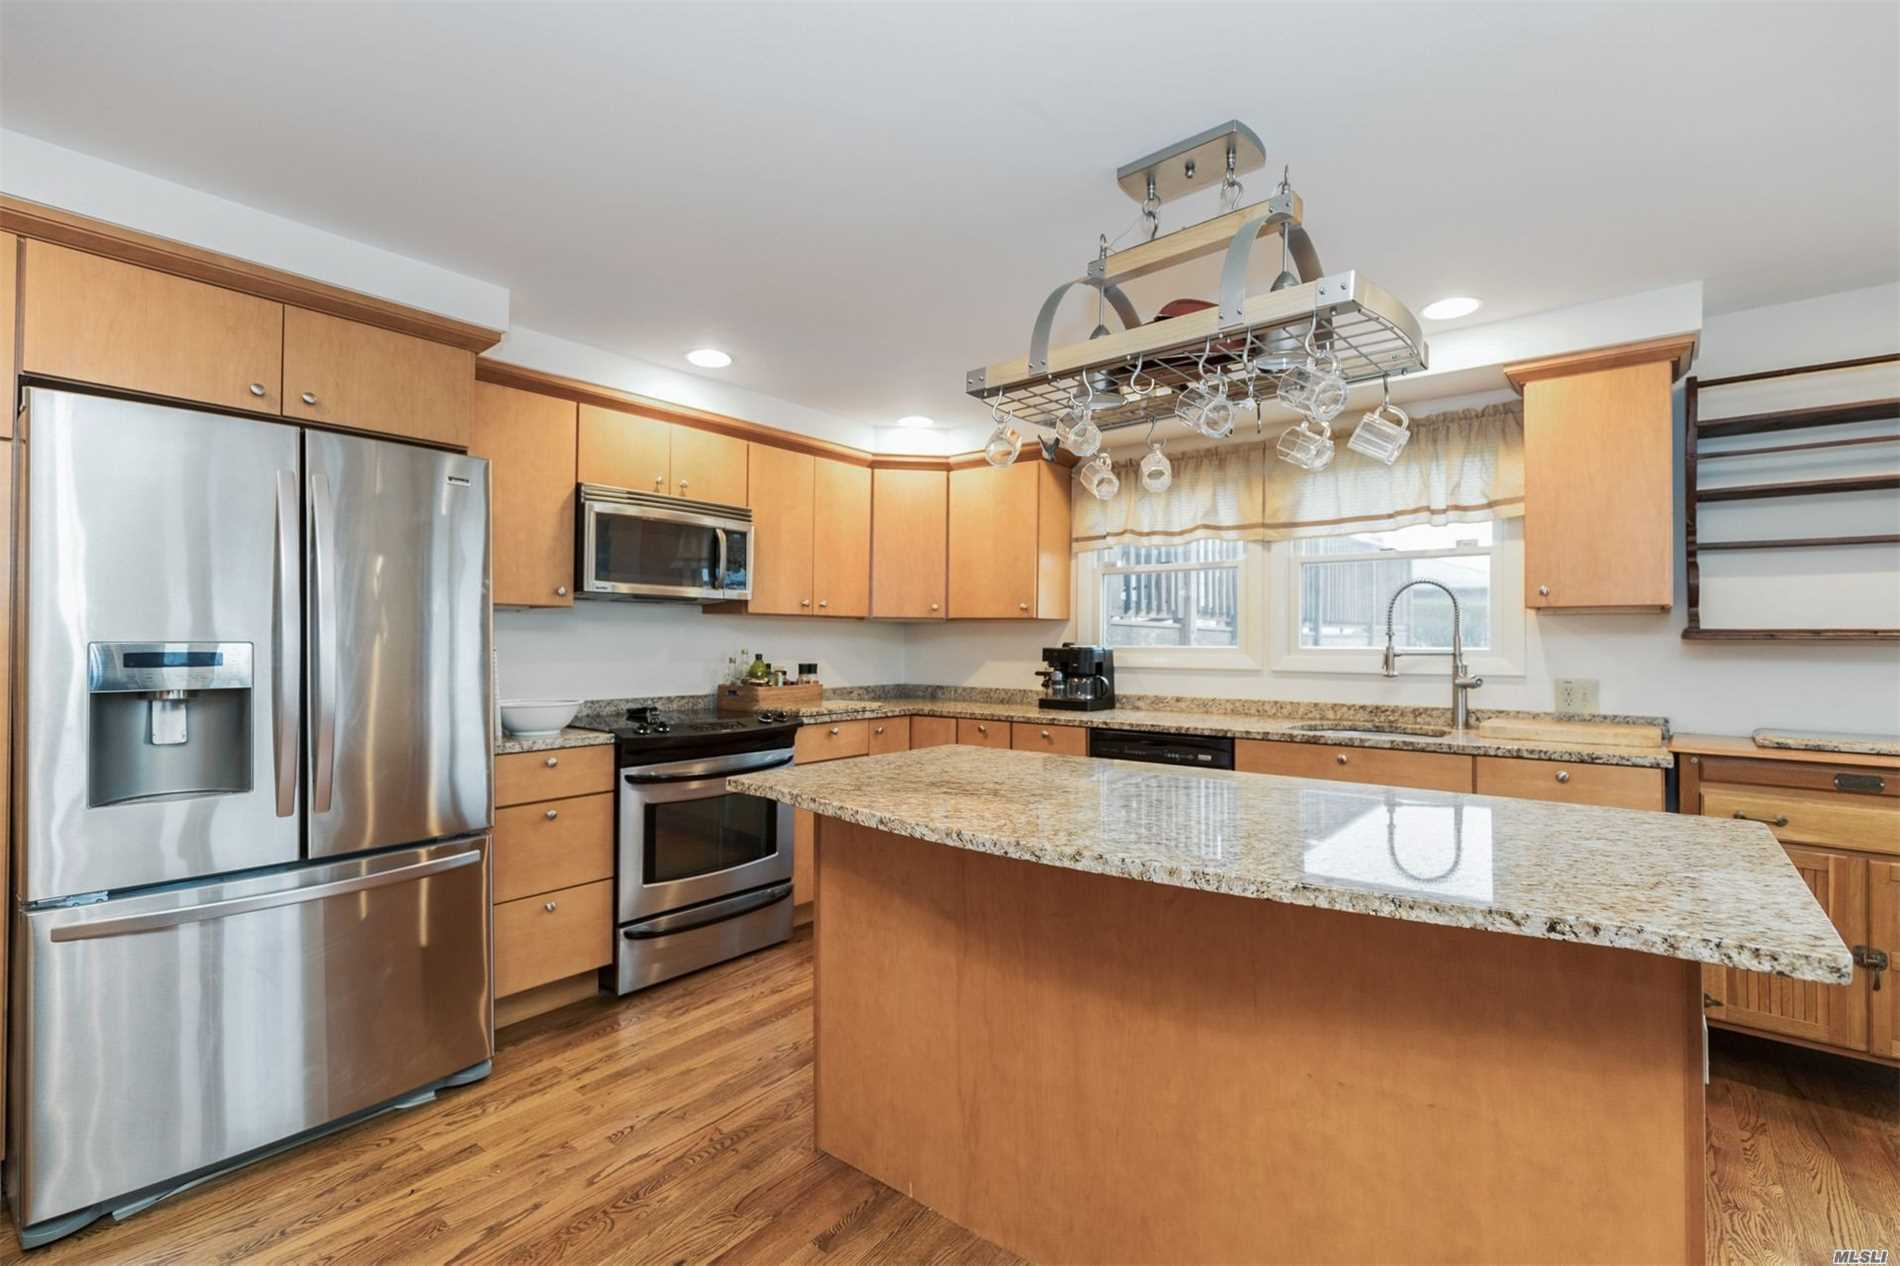 Mint and Expanded, Custom 4 Br and 4 Full Bath Split in the desirable Ocean Lea area. Beautiful tree lined block with beautiful waterviews. Home features: HW floors throughout, 5 skylights, CAC, new gas heating, Gym/den with hot tub, Master Br w/Bth walk in closet and private deck, wrap around decking on 2nd floor off bedrooms, Large and open Granite EIK w/center Isle, and 2 door garage which fits 4 cars tandem. 2 Private Driveways. Large multi-car driveway, Motorized Iron Fencing for back drwy.